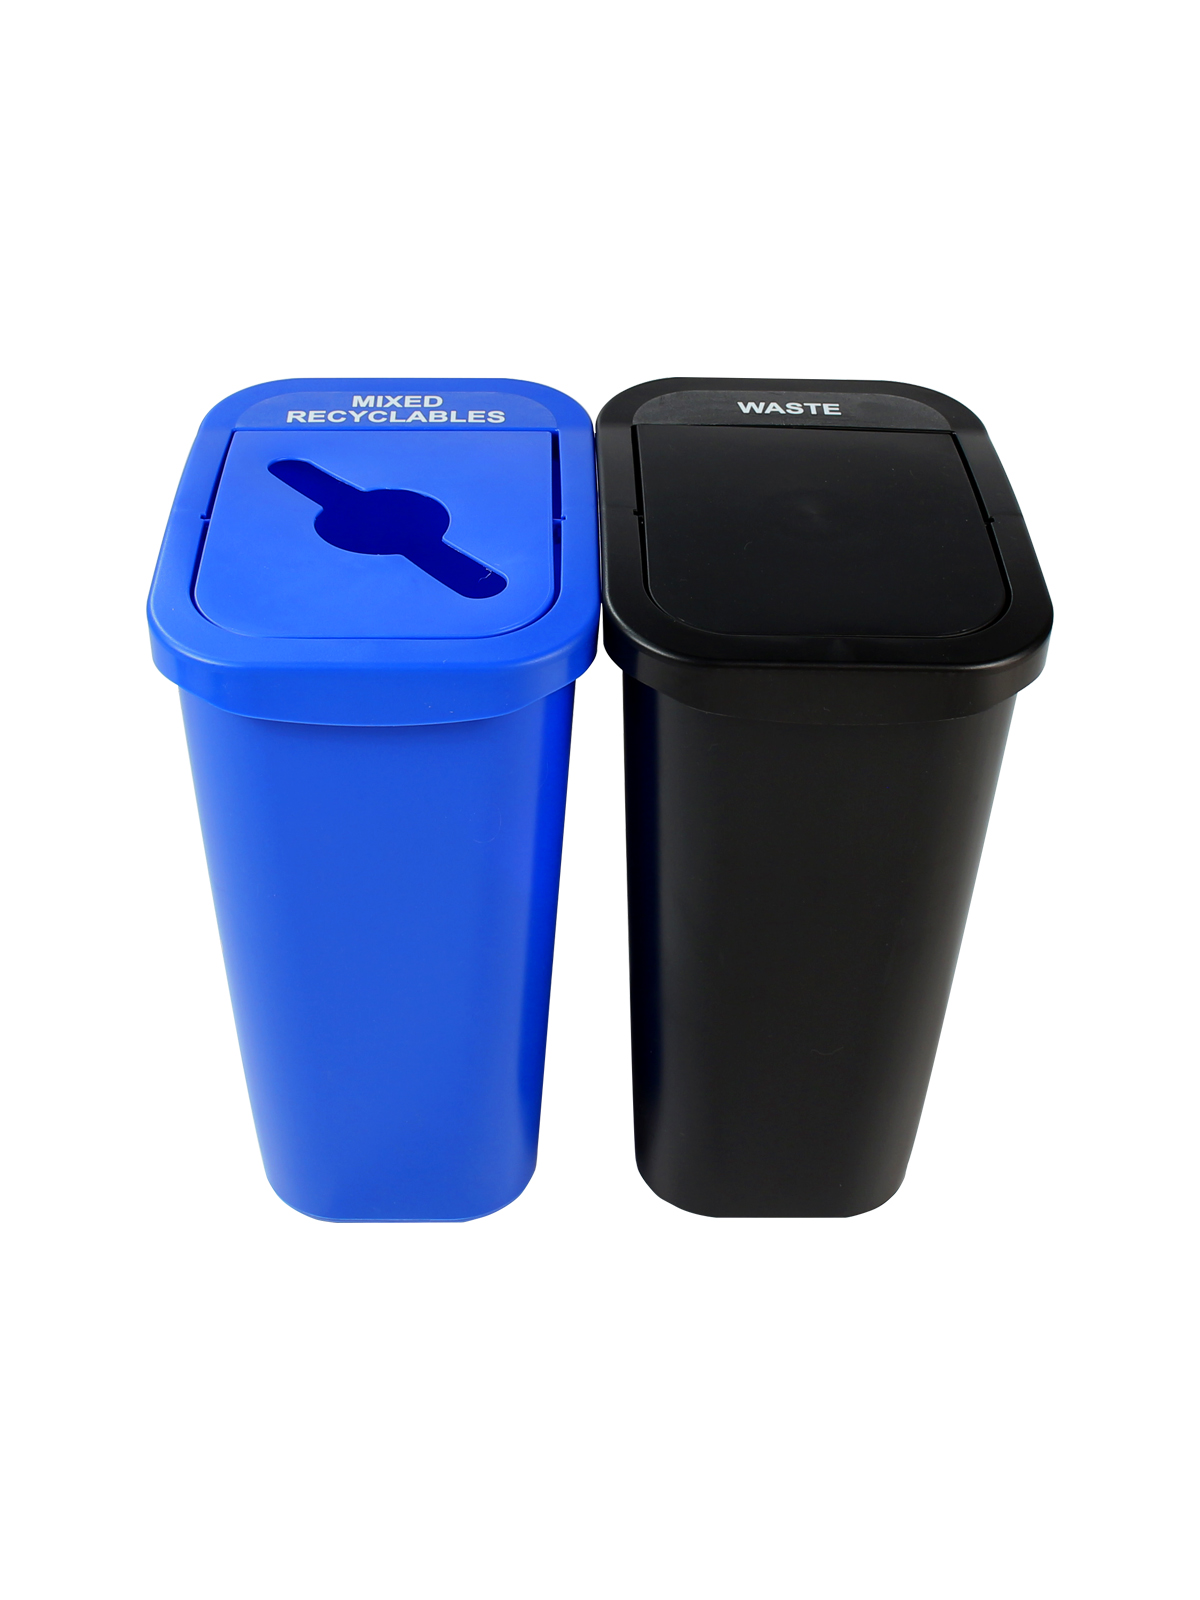 BILLI BOX - Double - 10 G - Mixed Recyclables-Waste - Mixed-Swing - Blue-Black